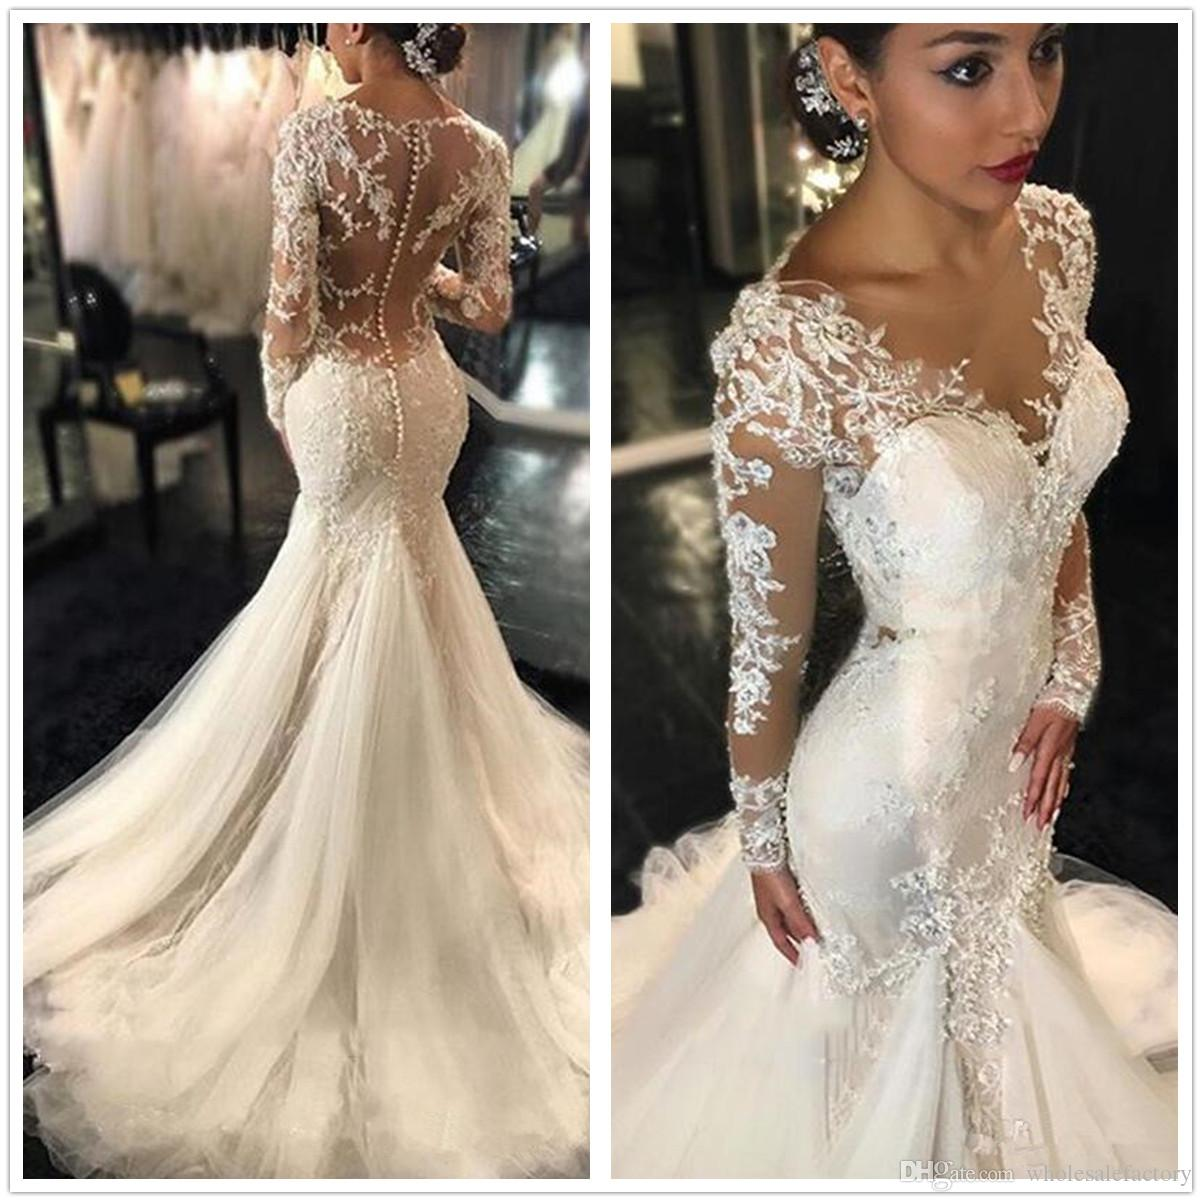 2018 Sheer Long Sleeves Lace Mermaid Wedding Dresses Applique Beaded Sheer Back Court Train Wedding Bridal Gowns With Buttons Tea Length Dresses